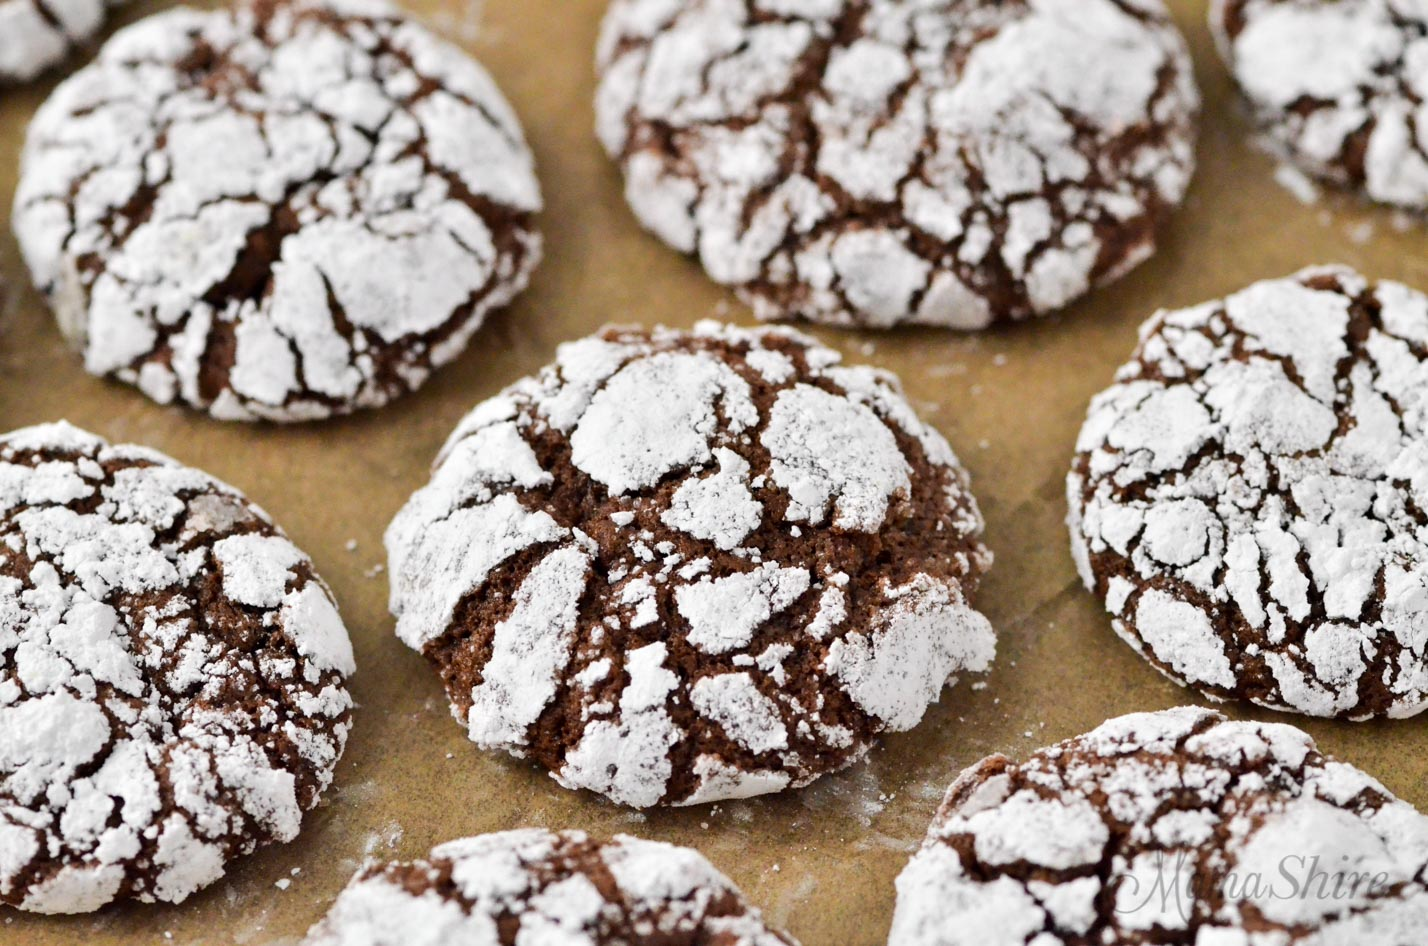 Chocolate cookie covered in powdered sugar.